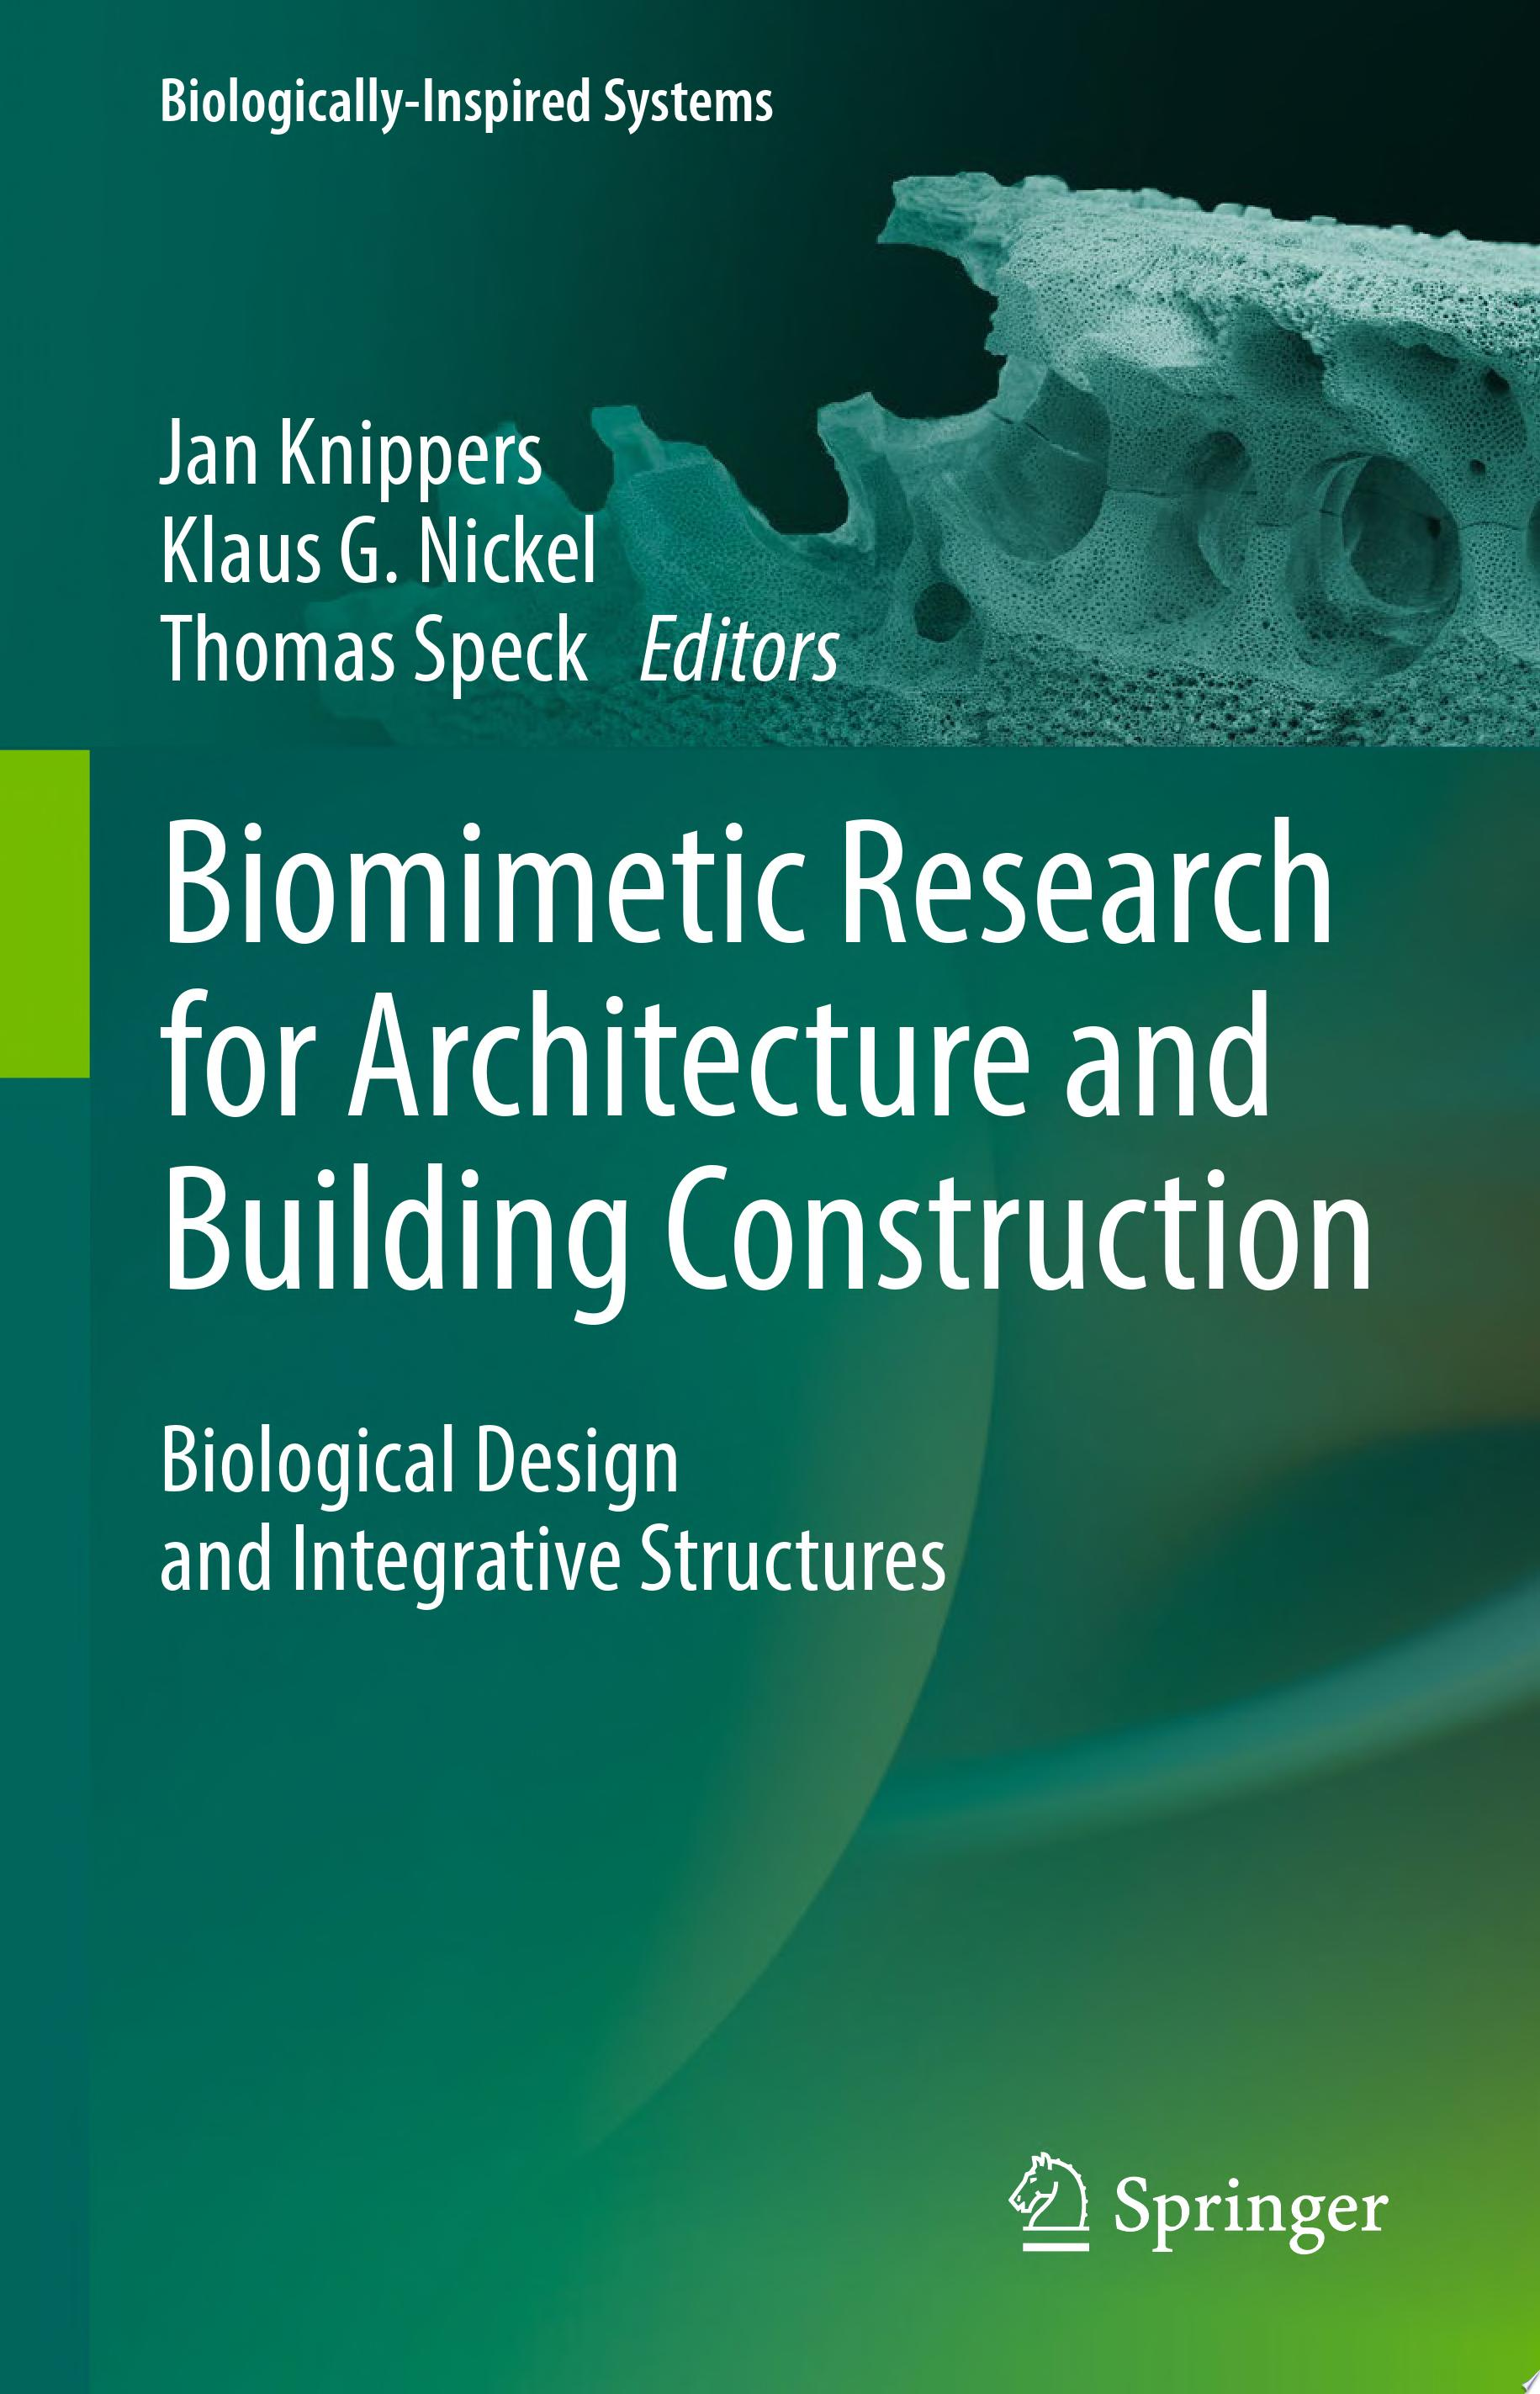 Biomimetic Research for Architecture and Building Construction